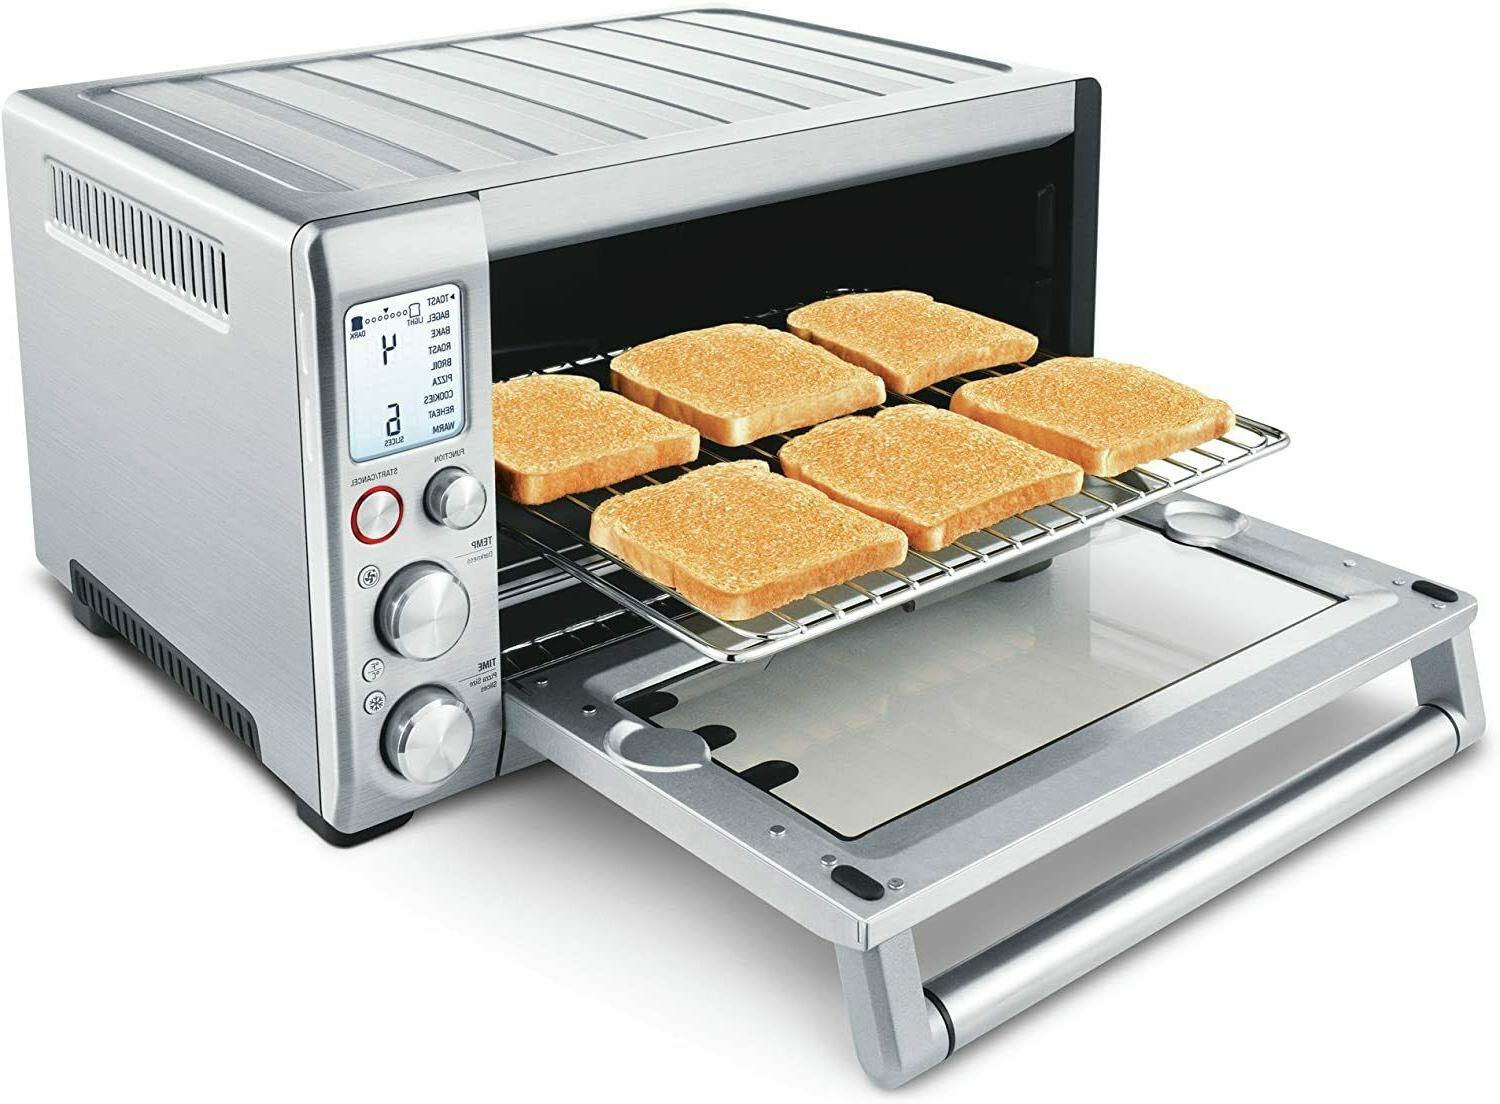 Breville 1800W Toaster